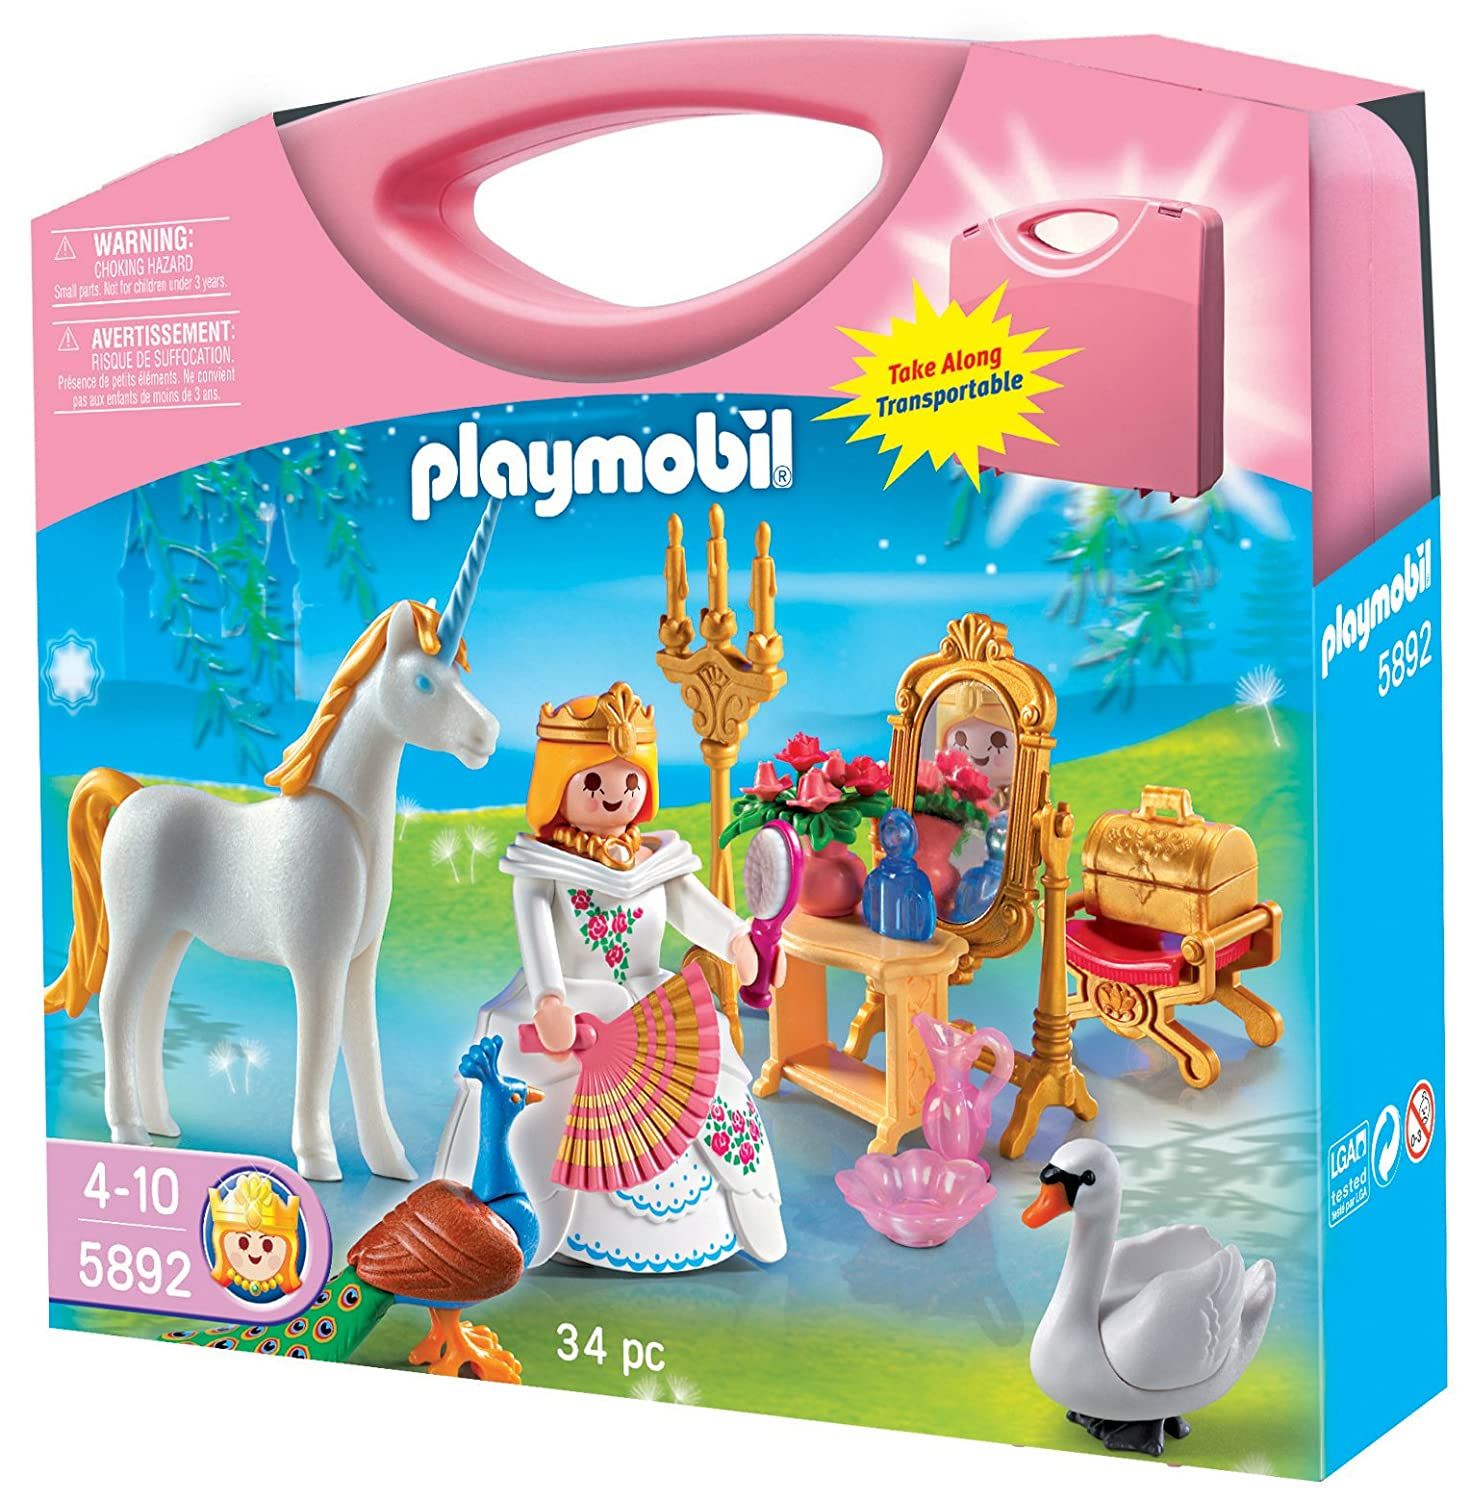 amazoncom playmobil princess carrying case playset toys games